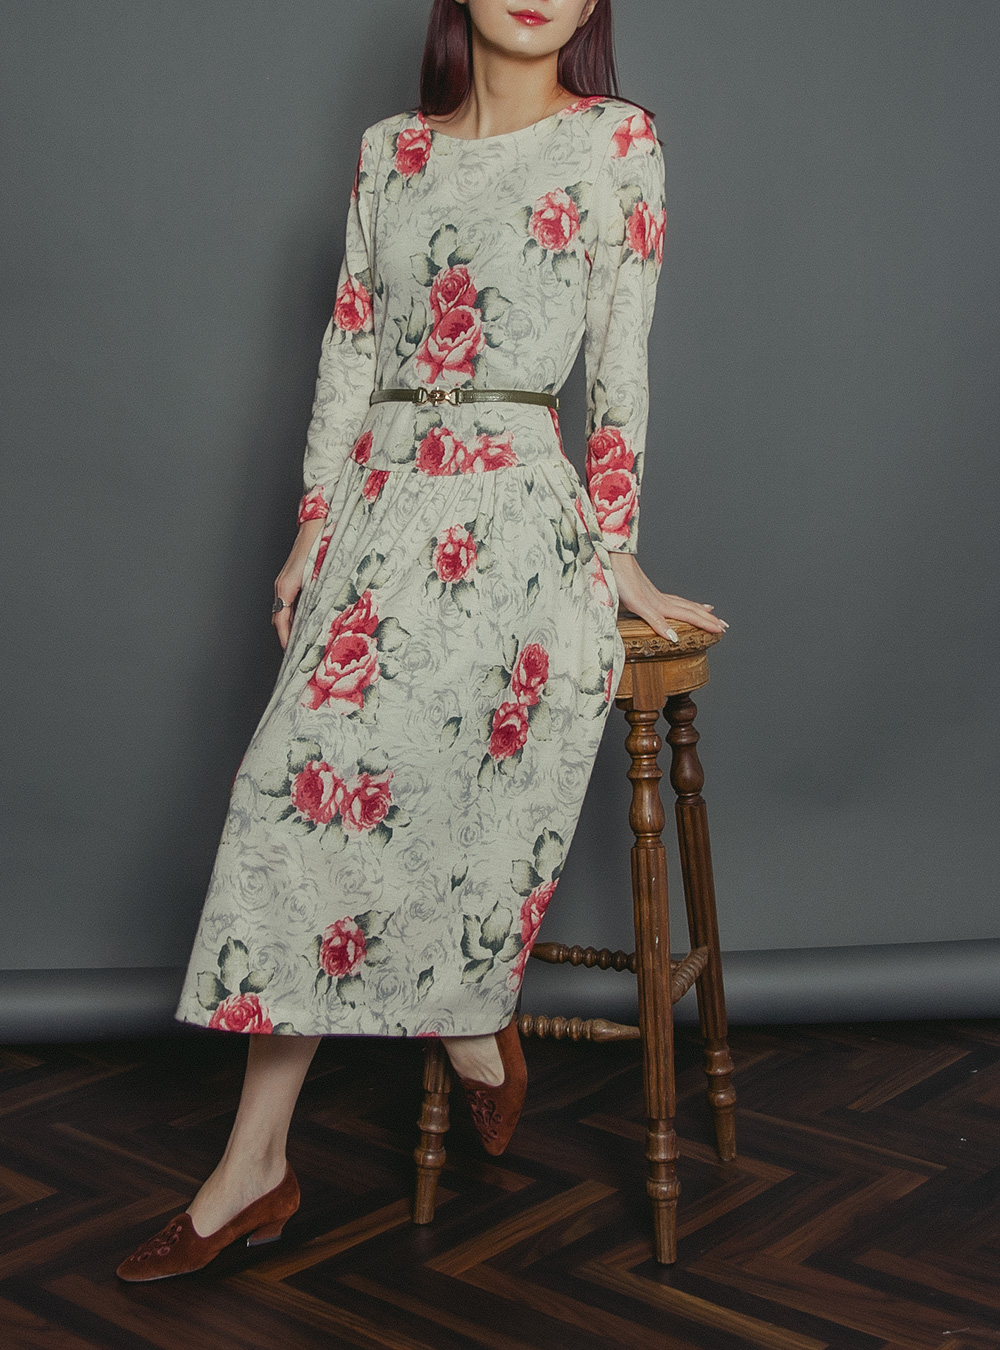 1970's White Rose Design Print Dress